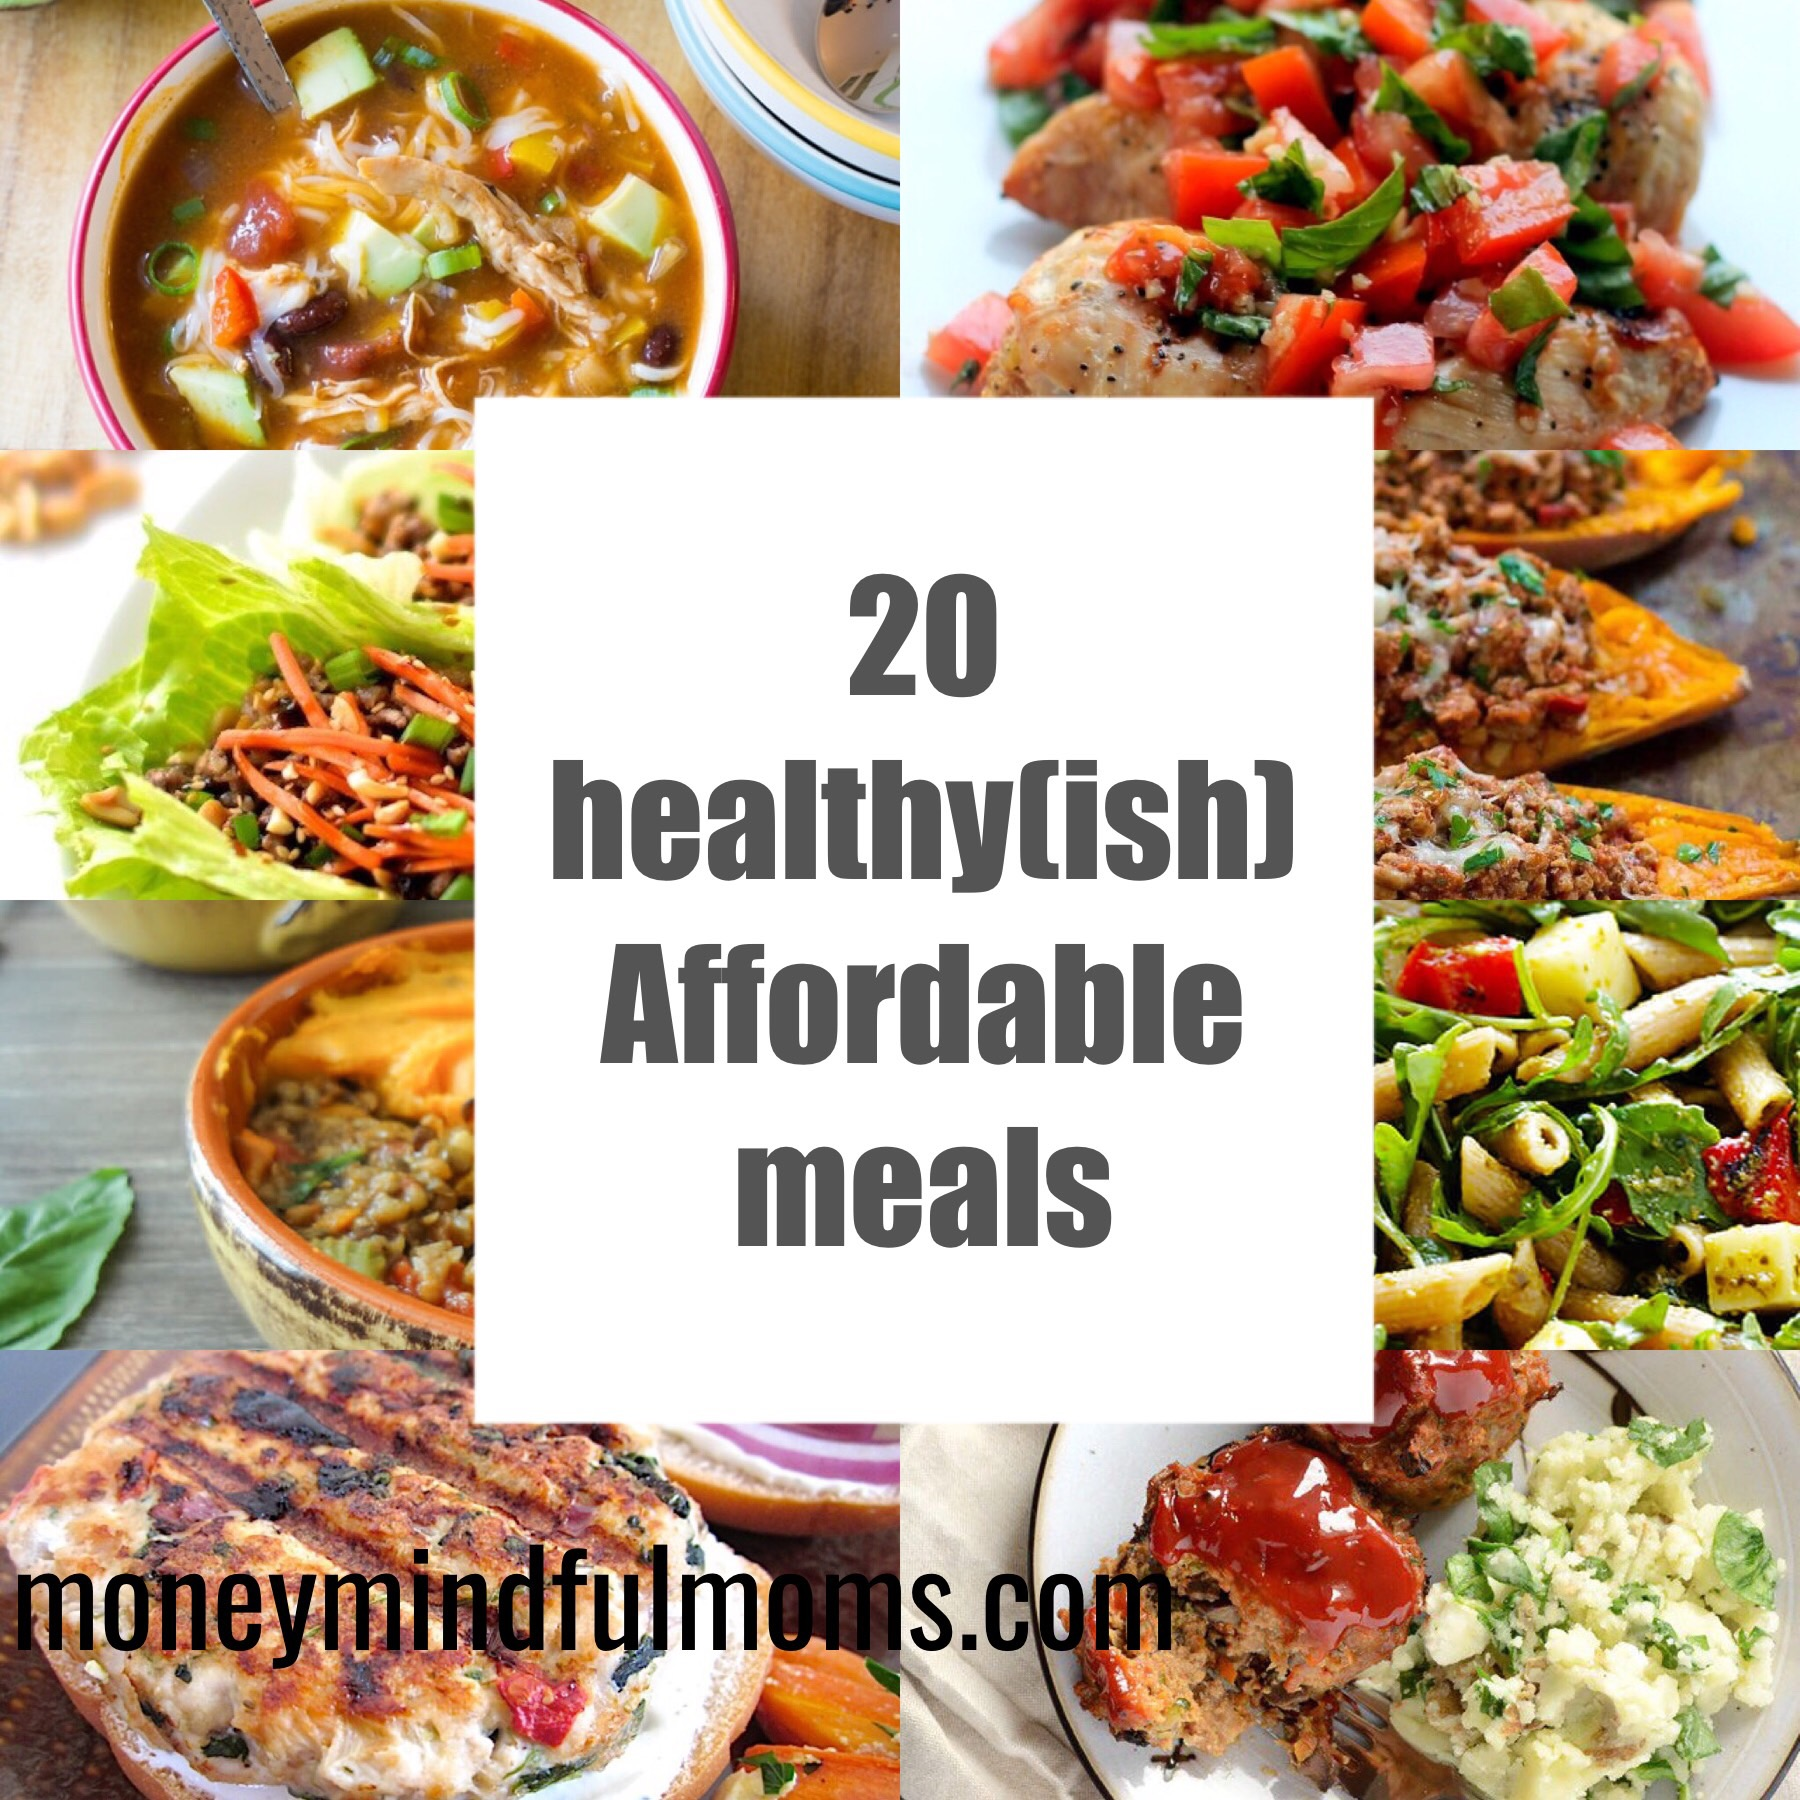 20 healthy (ish) affordable meals